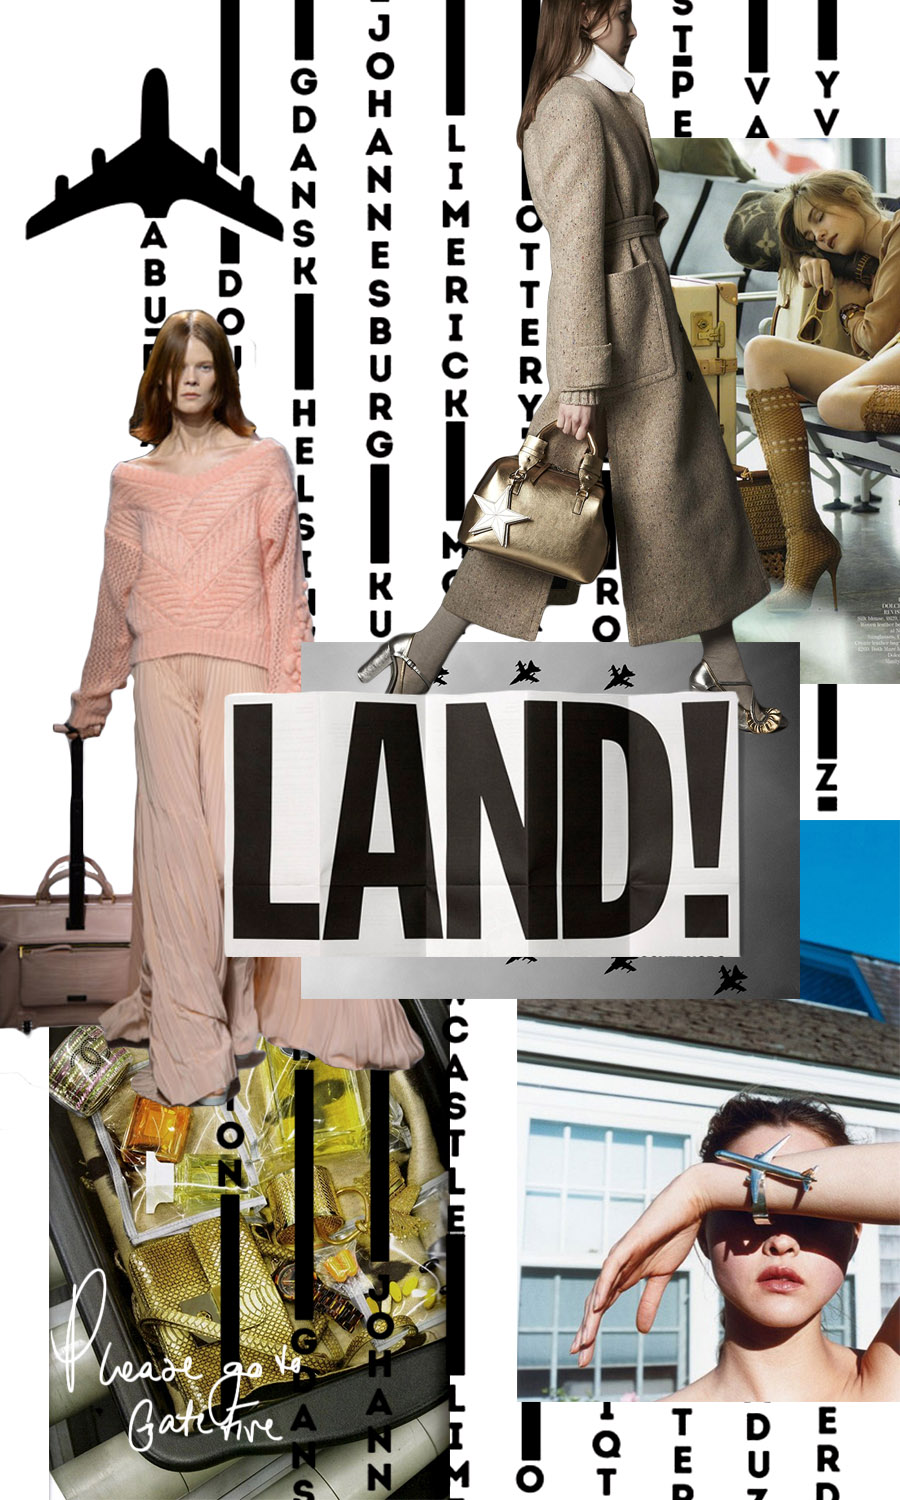 Credits:  Cover square - Helmut Newton  /  Photography - Raymond Meier  /  Land! - Droog  /  Fashion - No. 21